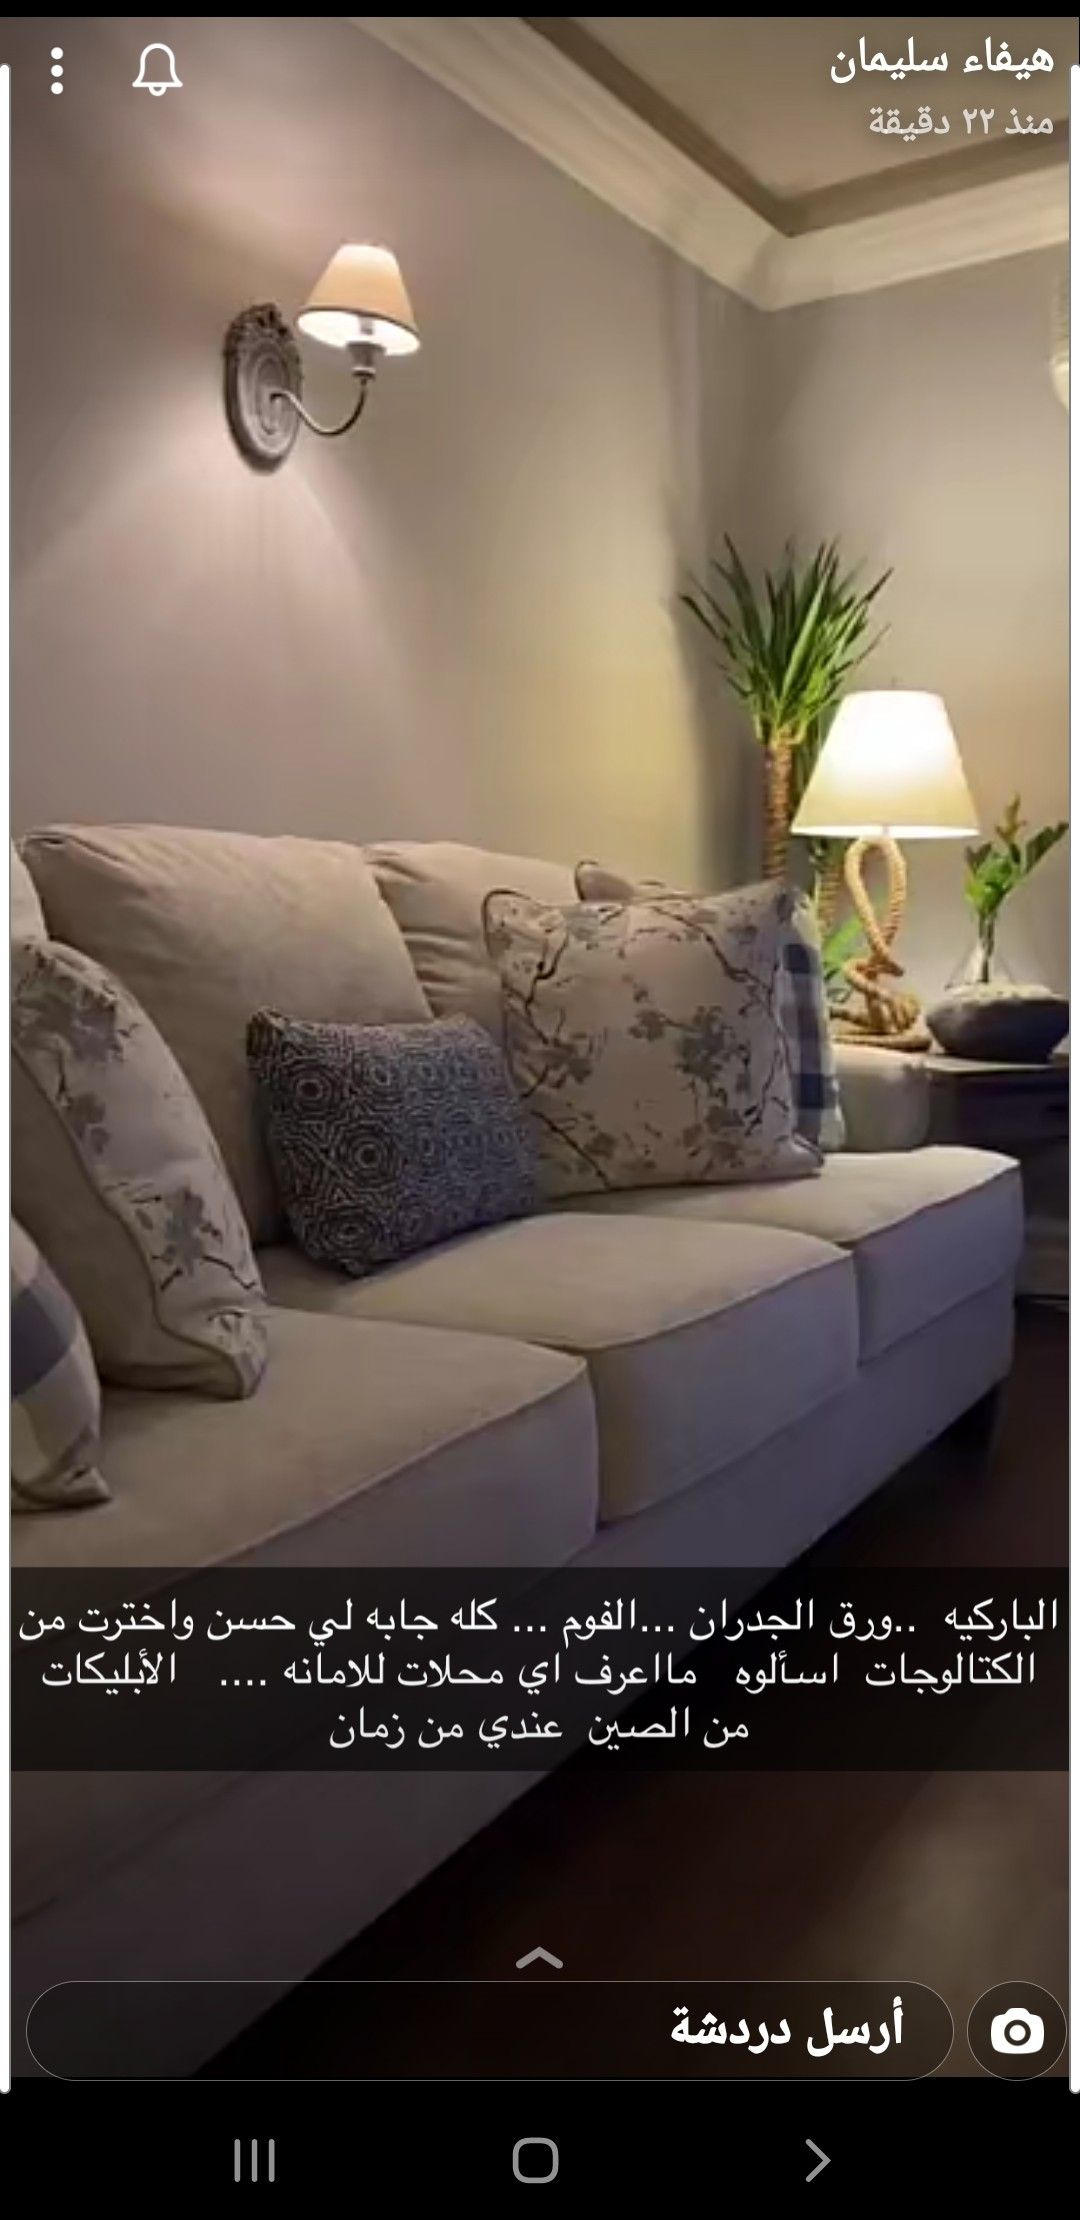 Pin By Mzoon27 On هيفاء سليمان Furniture Chaise Lounge Home Decor